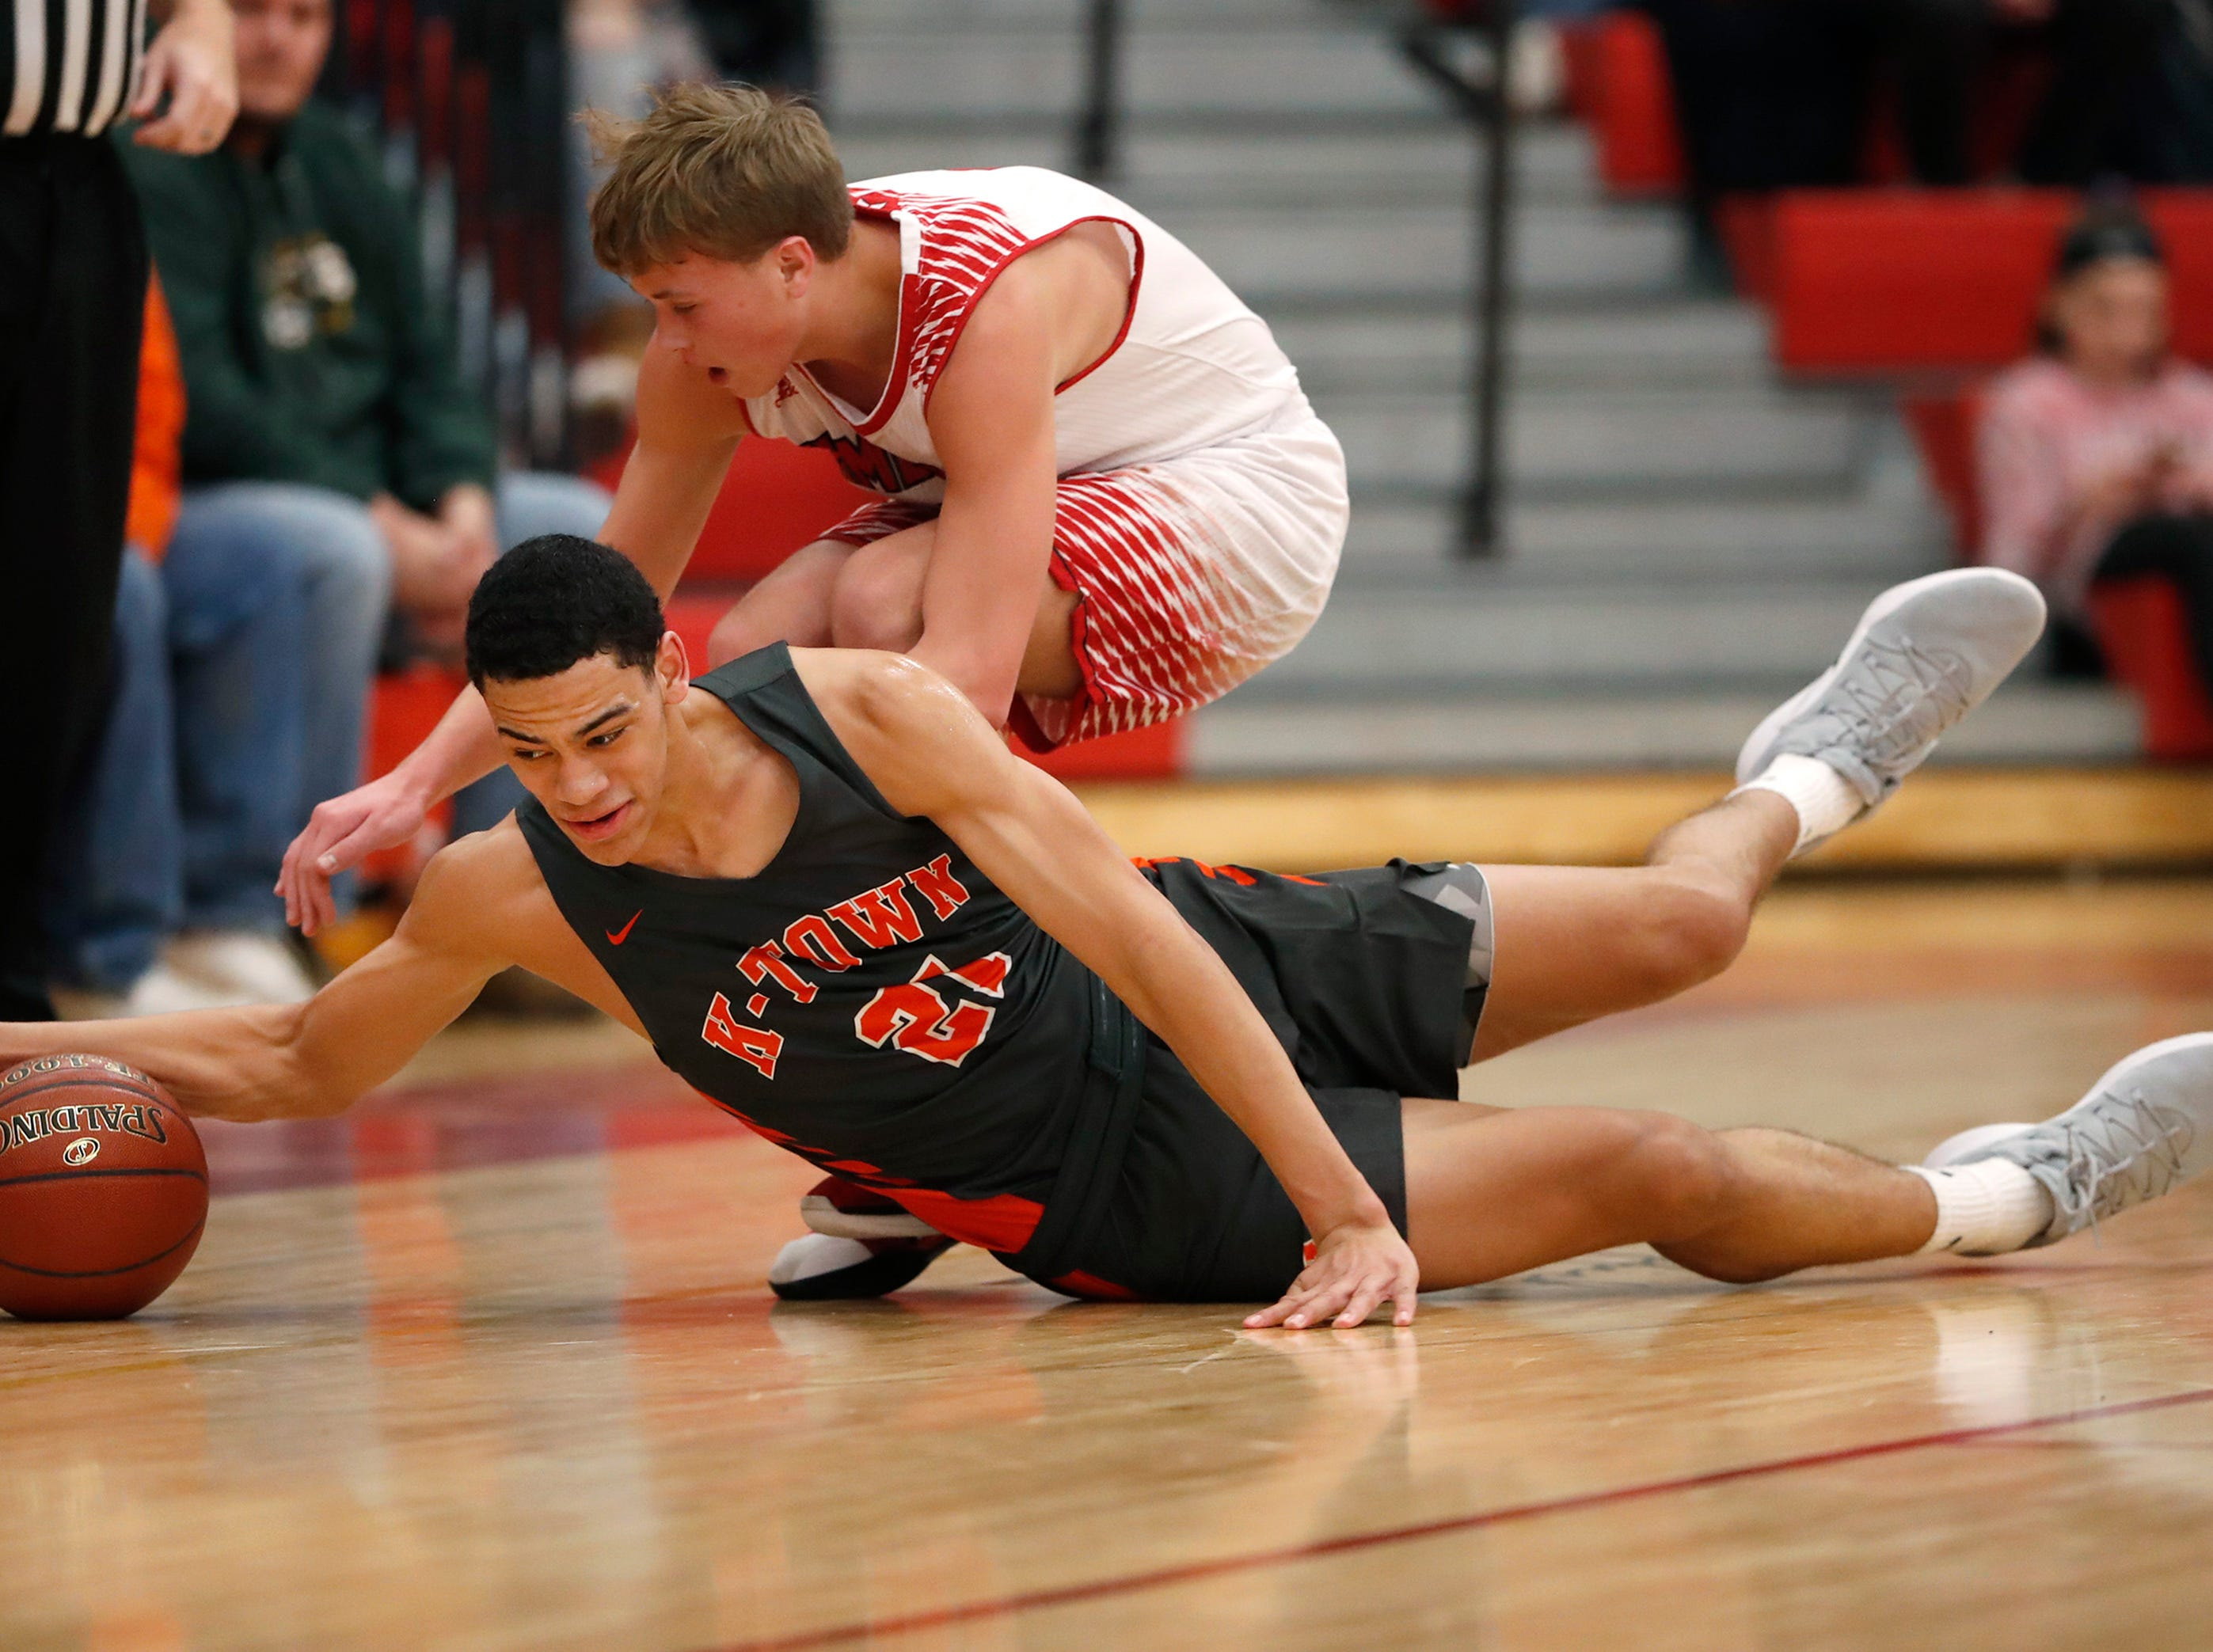 Kaukauna High School's Donovan Ivory and Kimberly High School's Jake Buchanan trip over each other as they chase after the ball Friday, Dec. 7, 2018, in Kimberly, Wis.